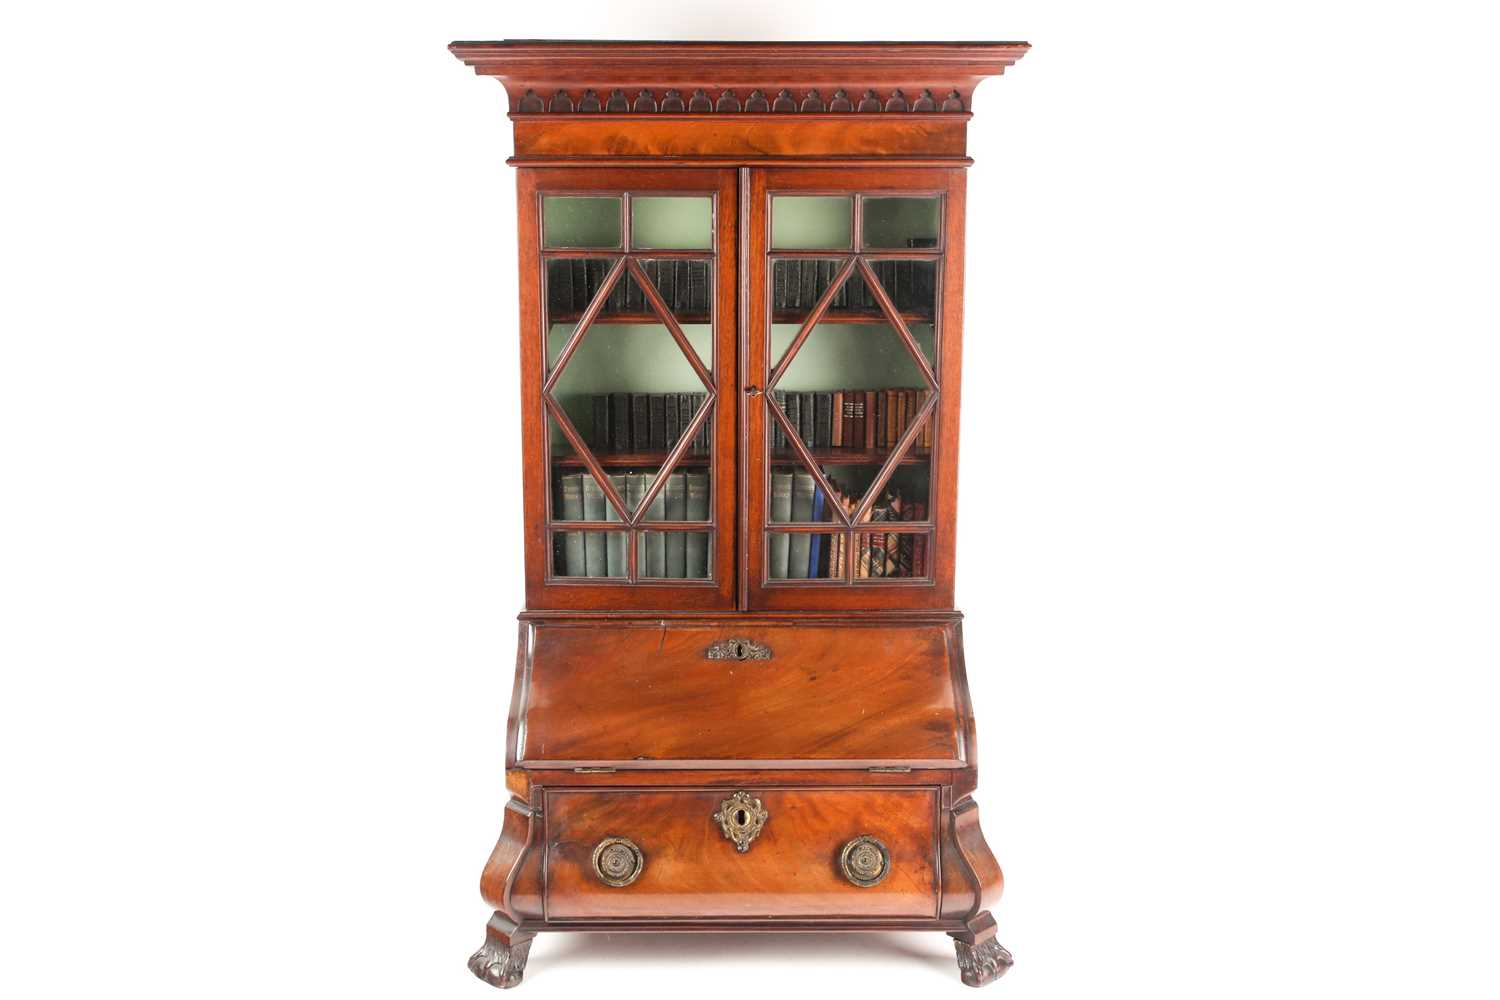 A Chippendale style miniature mahogany bombe bureau bookcase. The upper section with arcaded